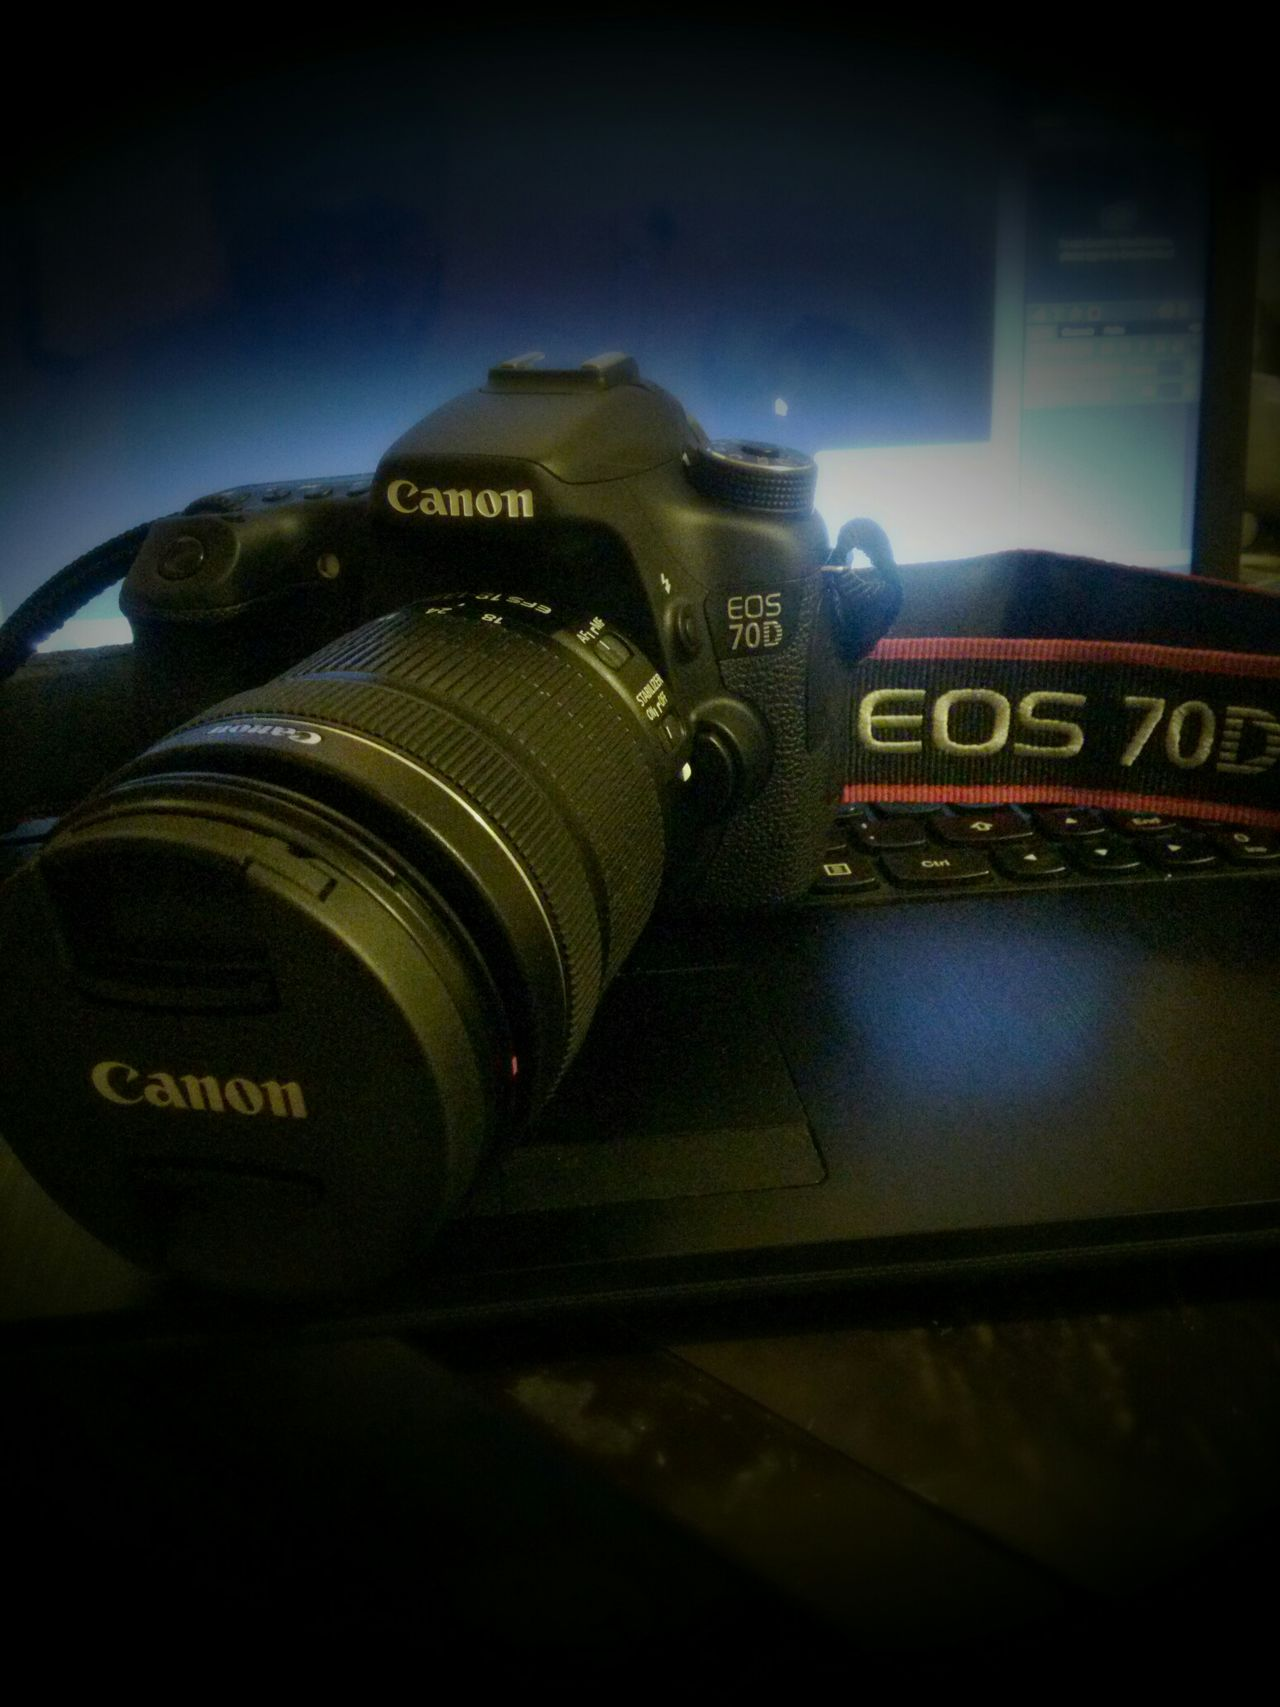 NewMachine Canon70d Photo Phptography Phptographer